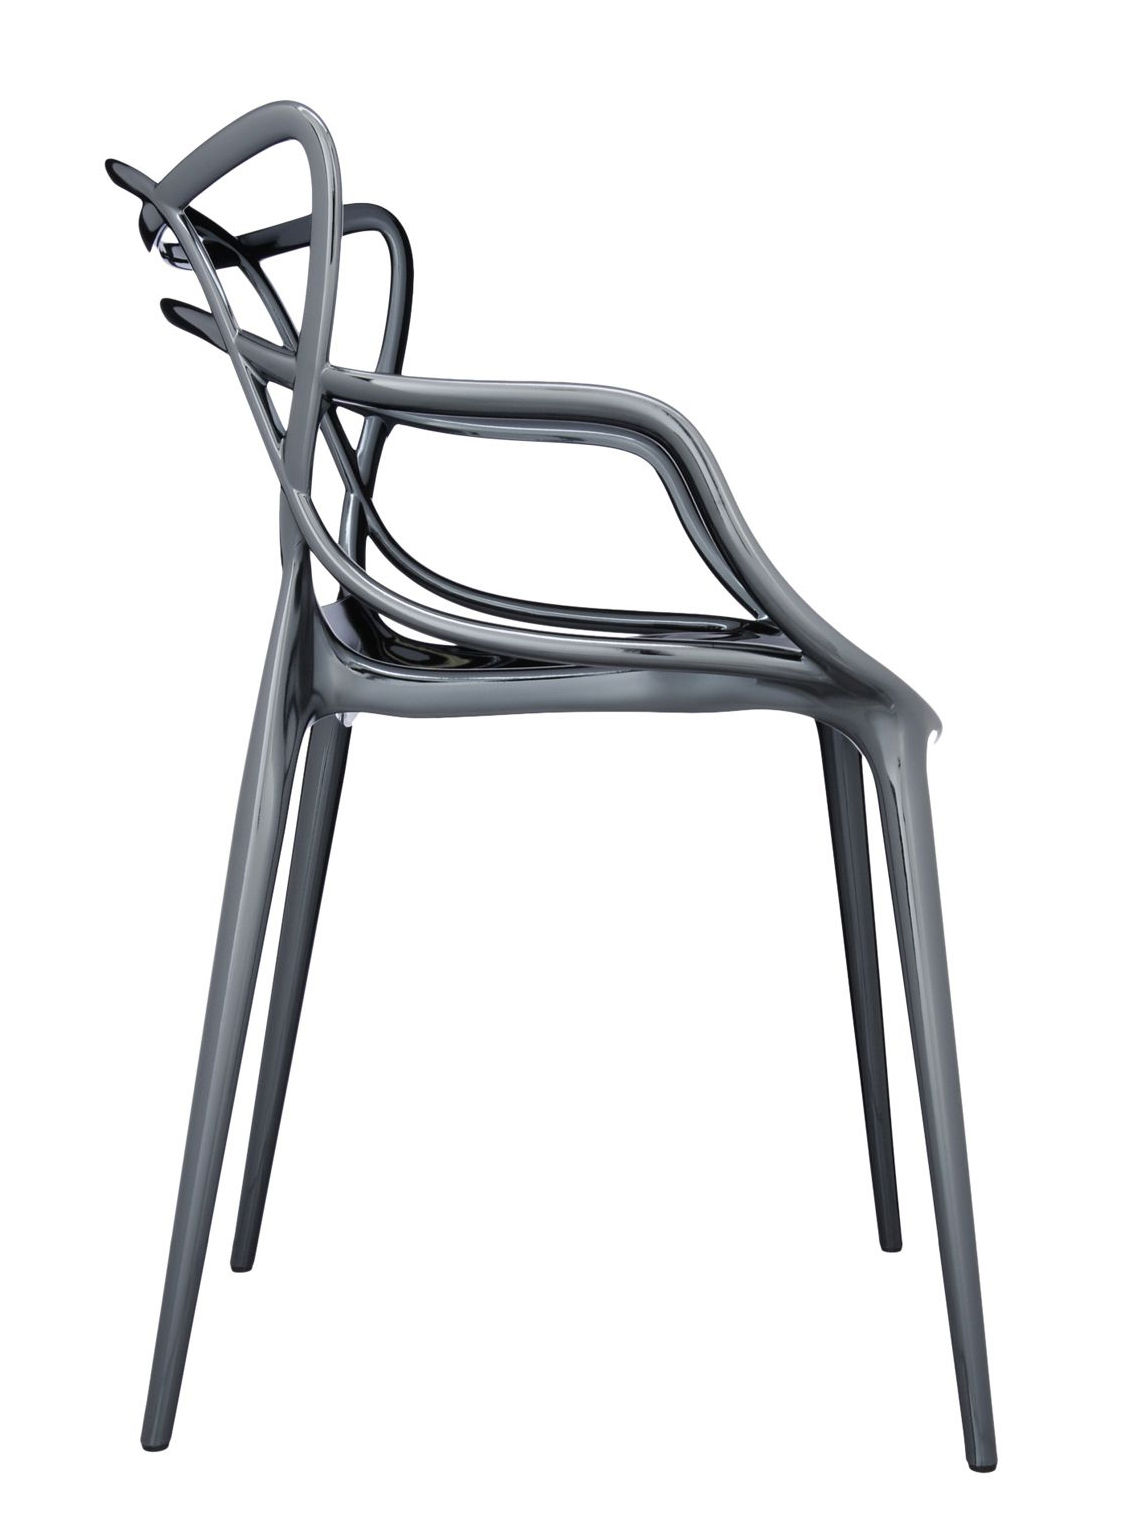 Chaises Masters Starck Fauteuil Empilable Masters Kartell - Gris/argent/métal